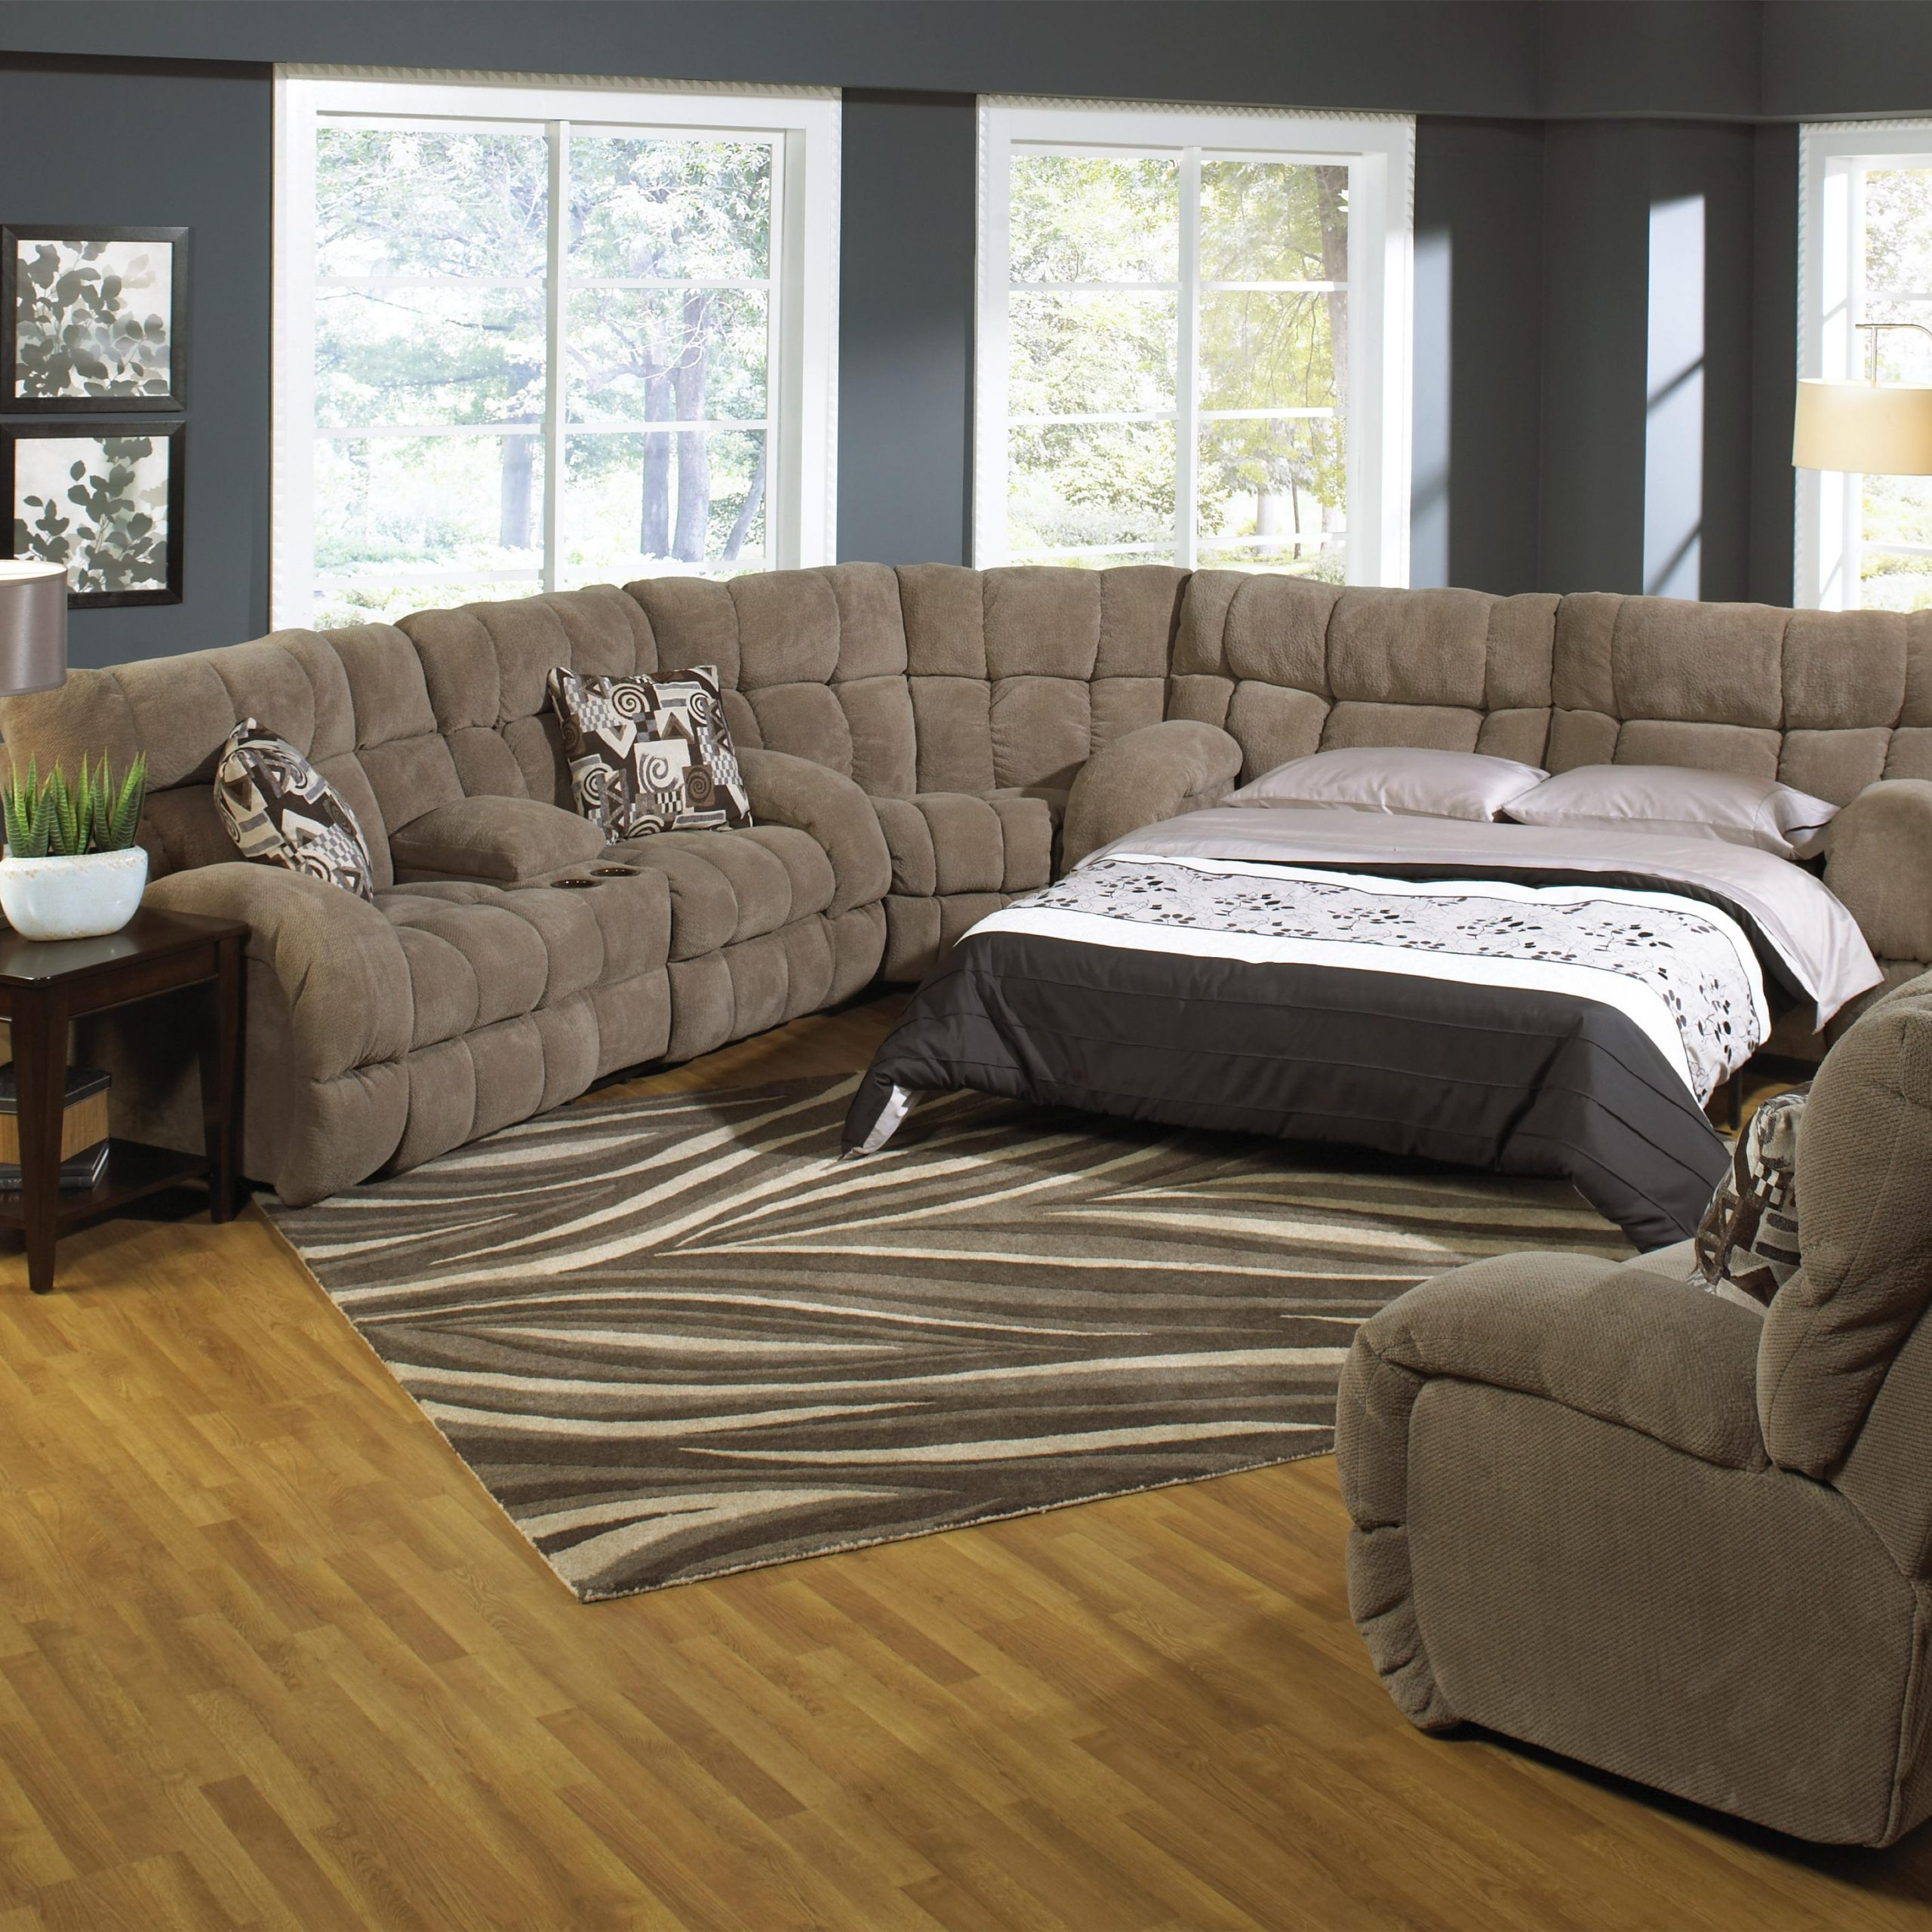 Sectional Sofa Sleepers For Better Sleep Quality And Within Big Sofa Chairs (View 6 of 15)